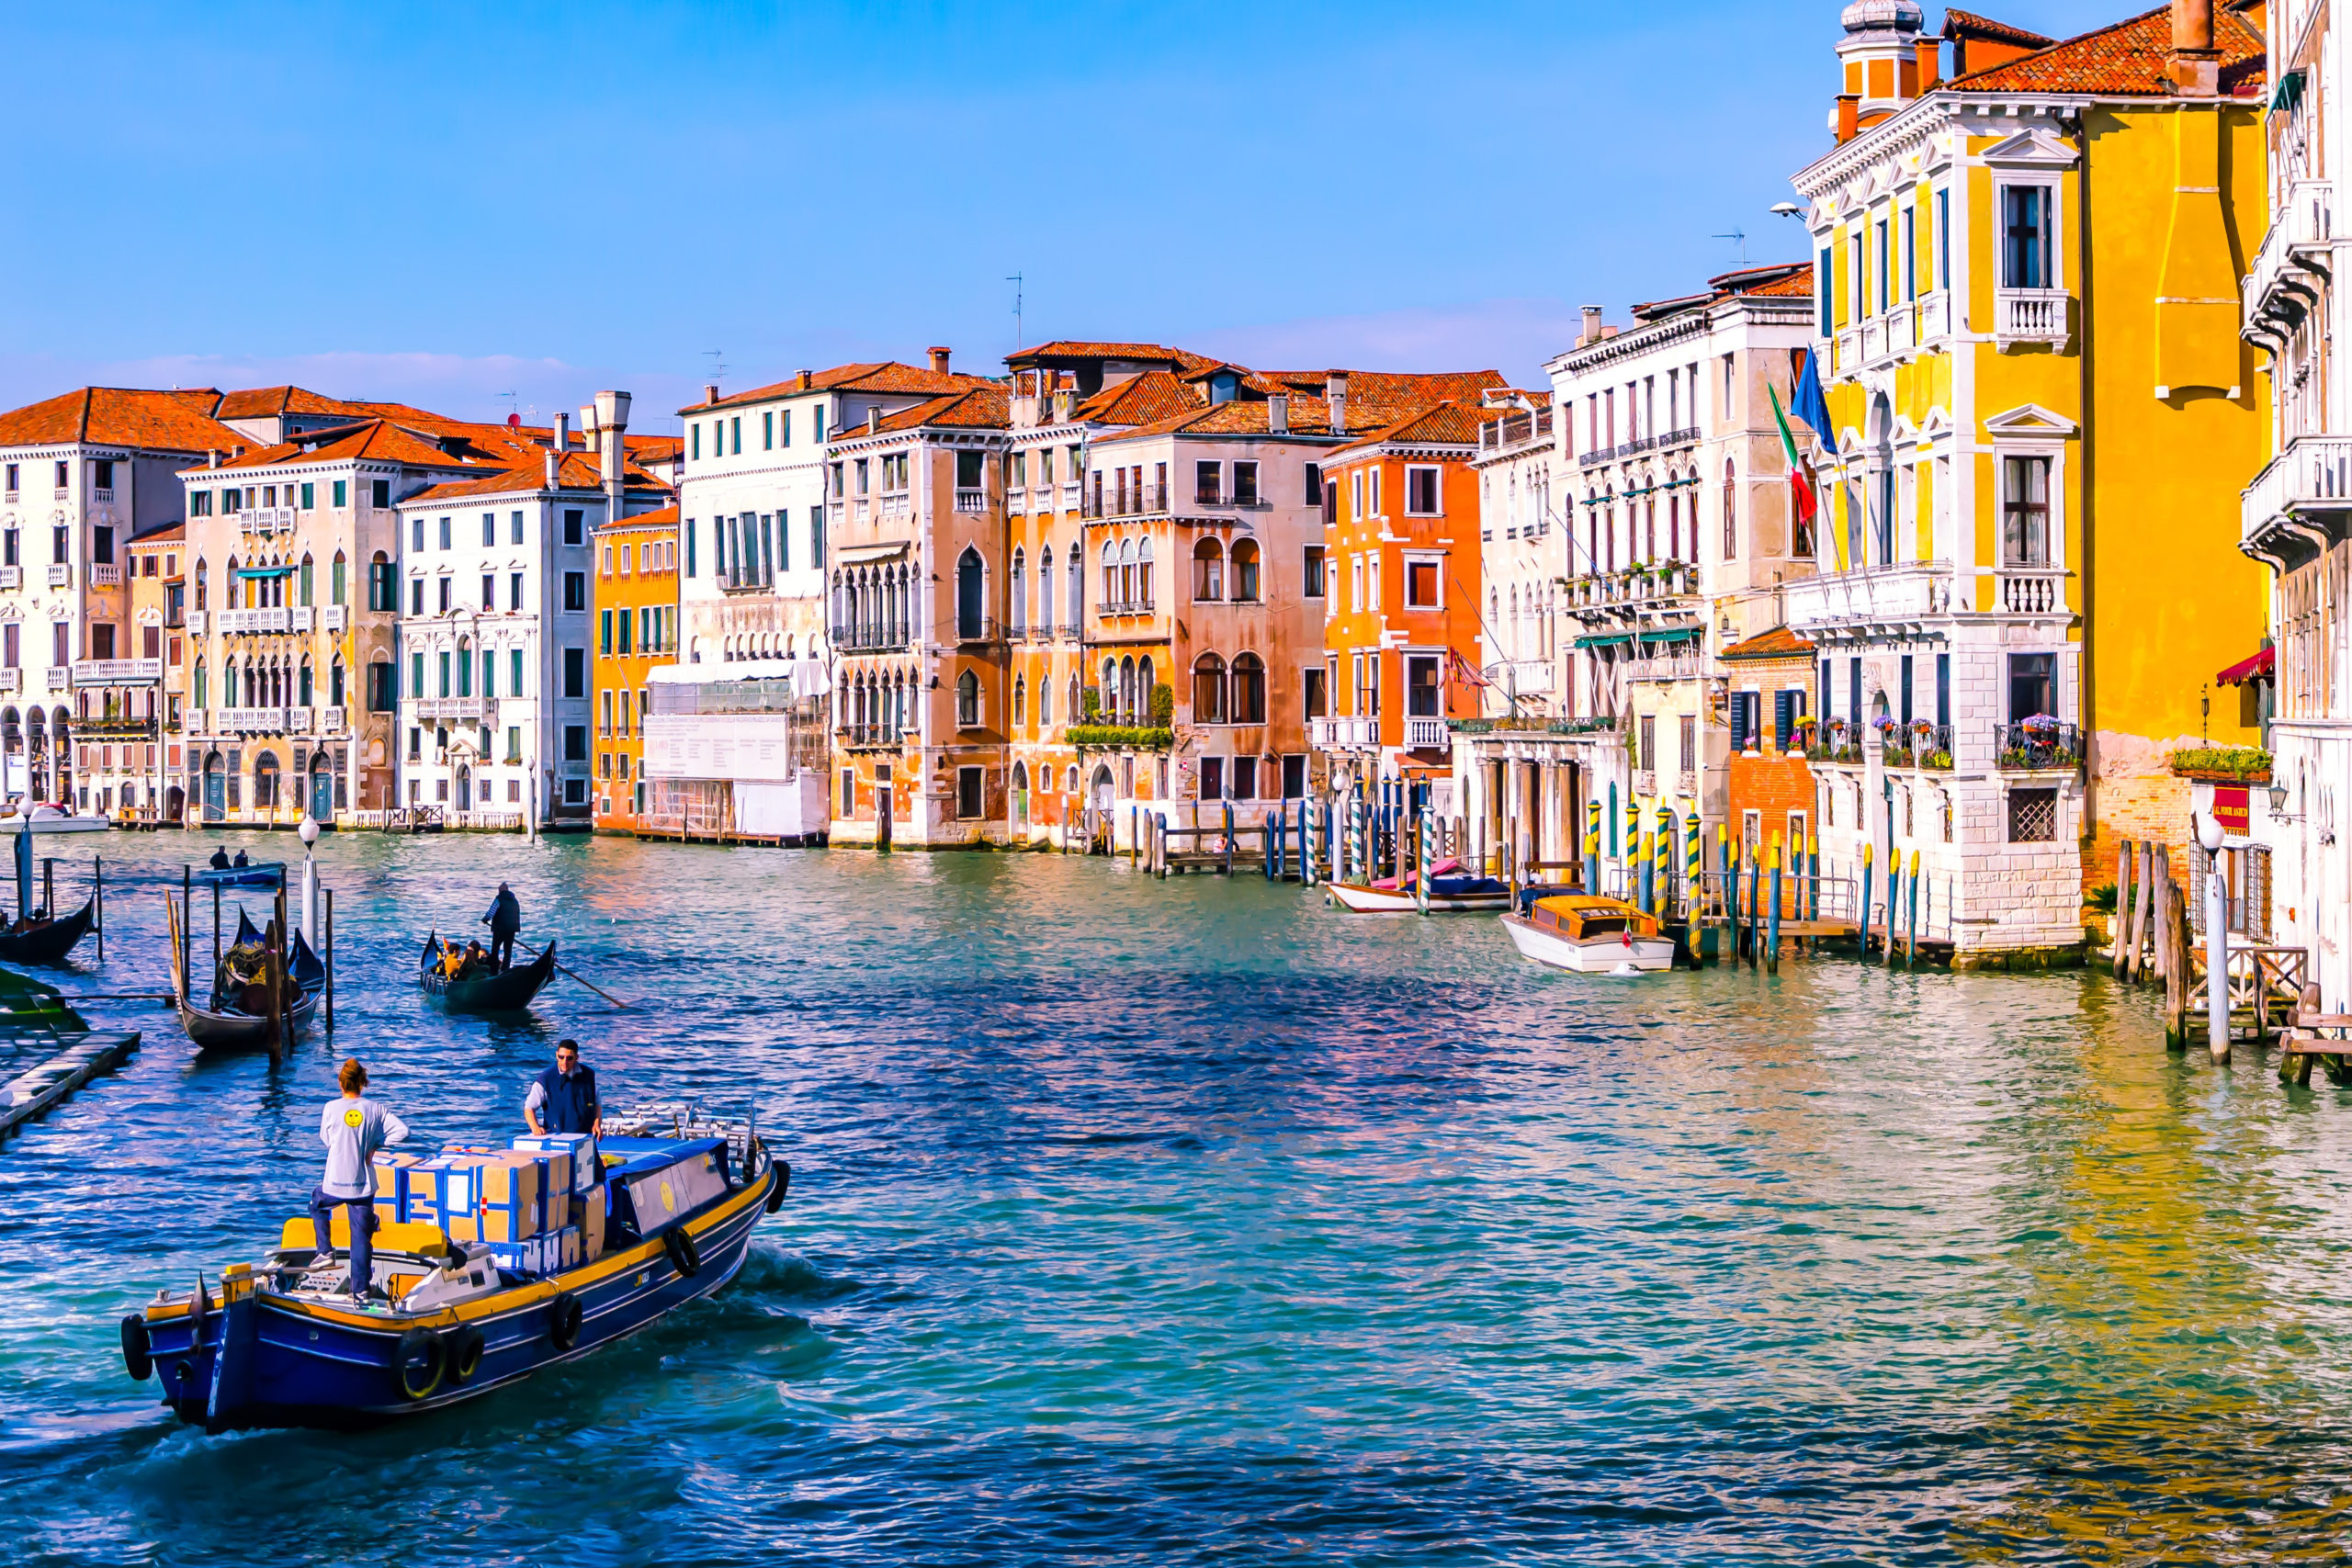 colorful photo of Venice from a canal